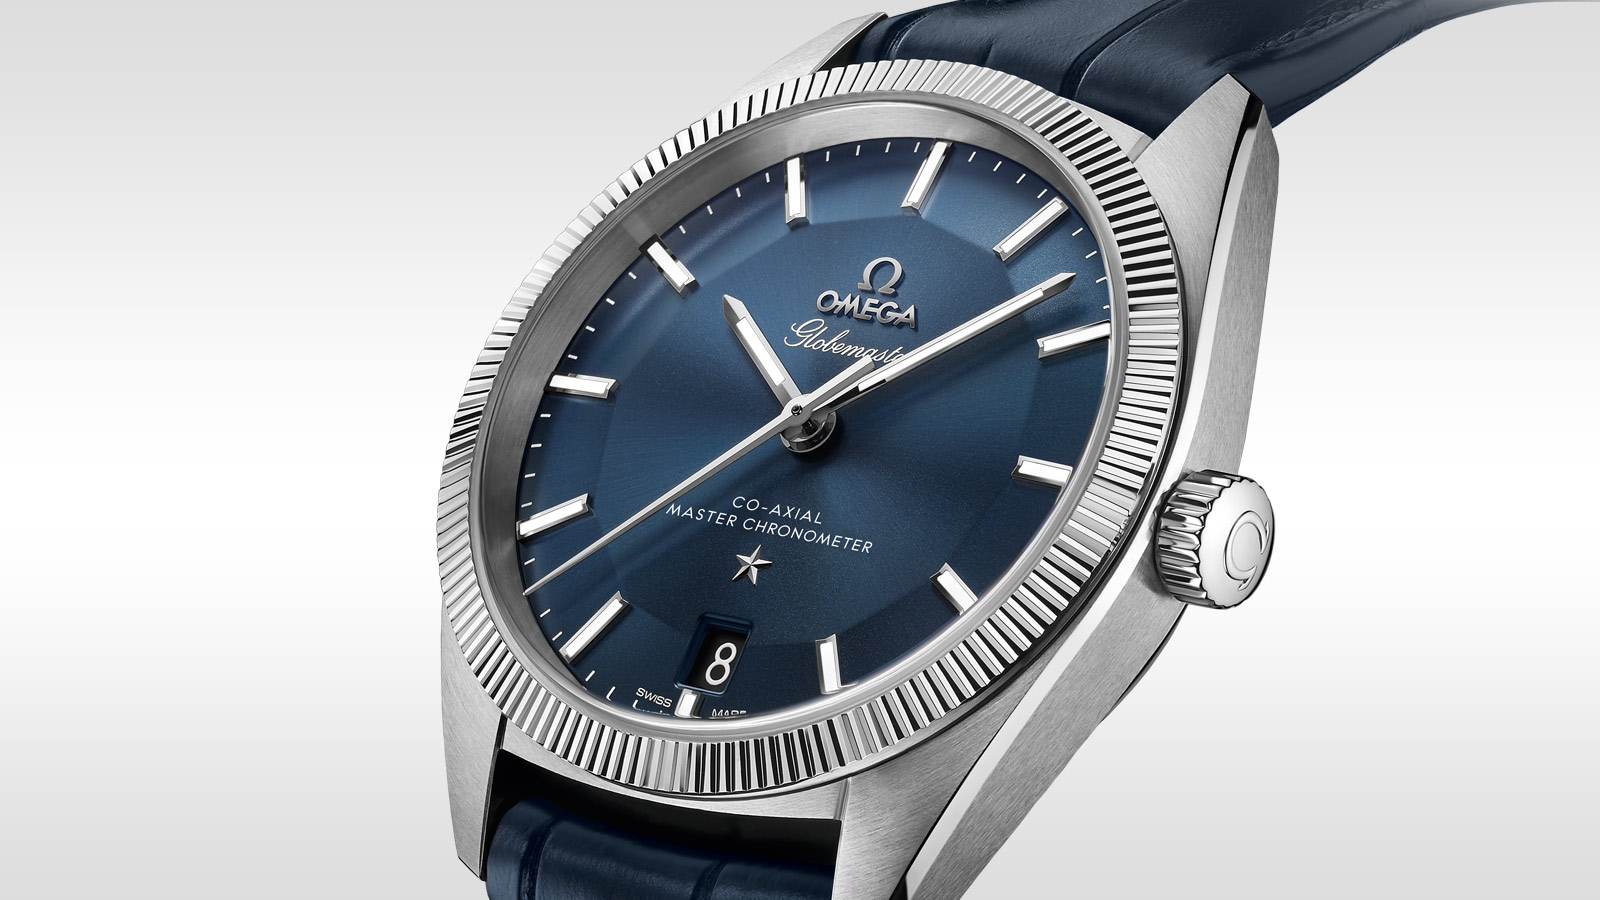 Constellation グローブマスター Globemaster Omega Co‑Axial Master Chronometer 39 mm - 130.33.39.21.03.001 - ビュー 1